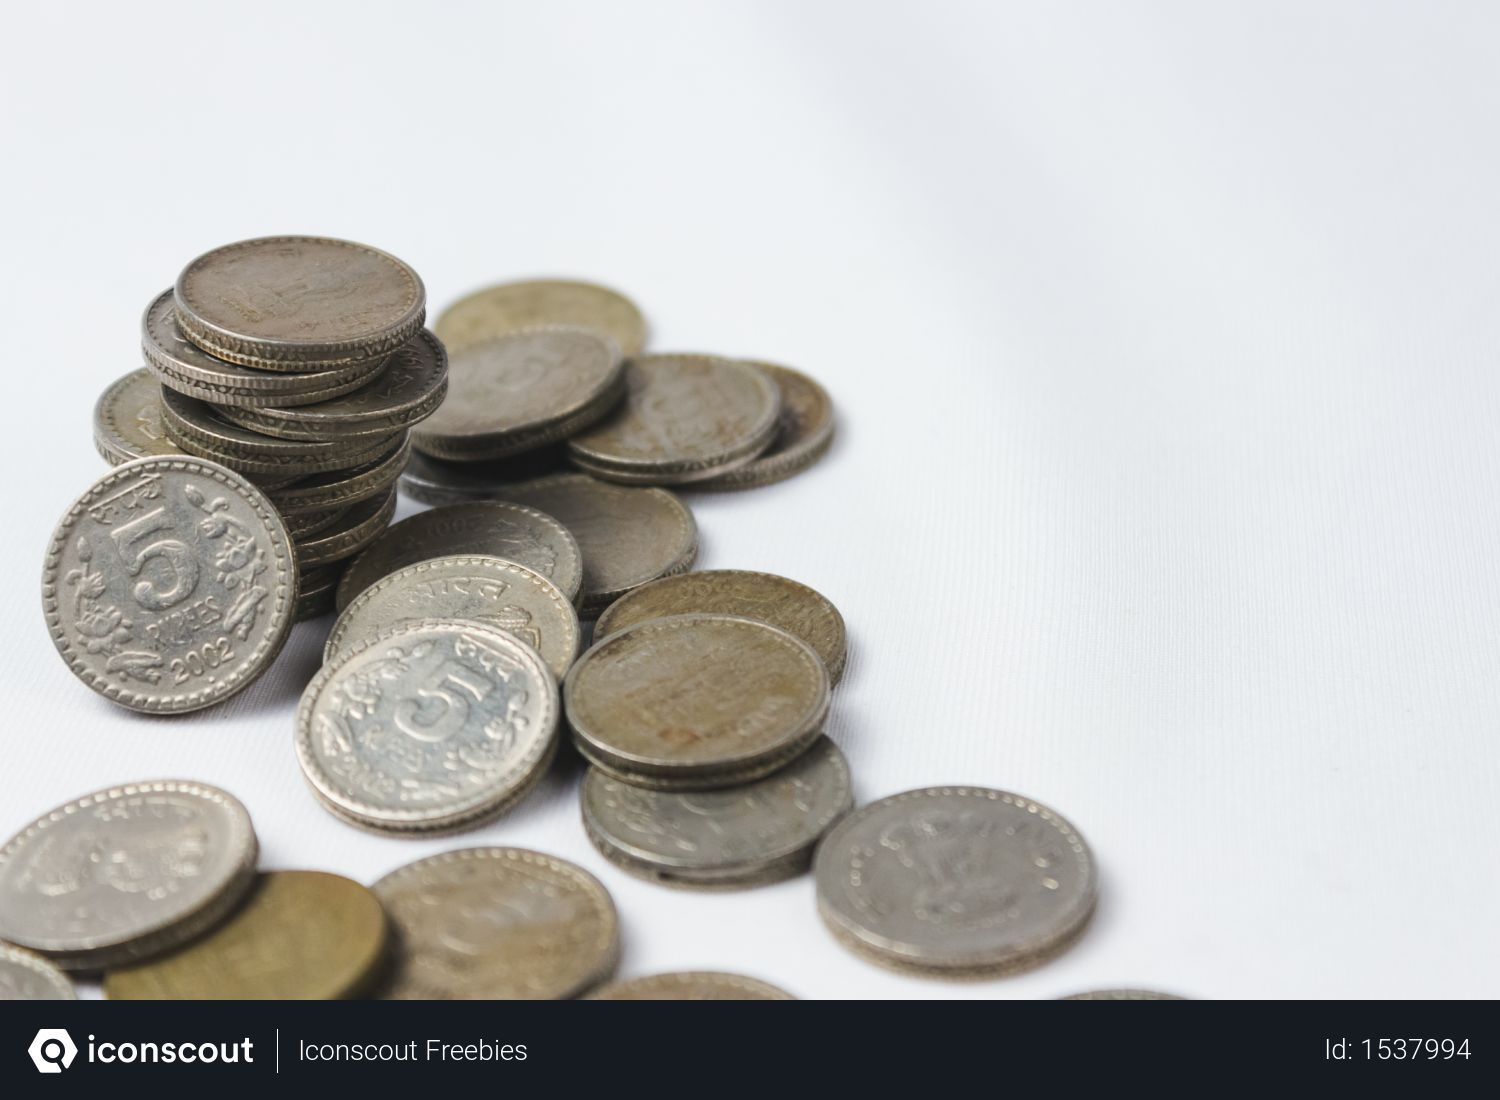 Free Indian Currency Coins On White Desk Photo Download In Png Jpg Format White Desks Coins Business Photos